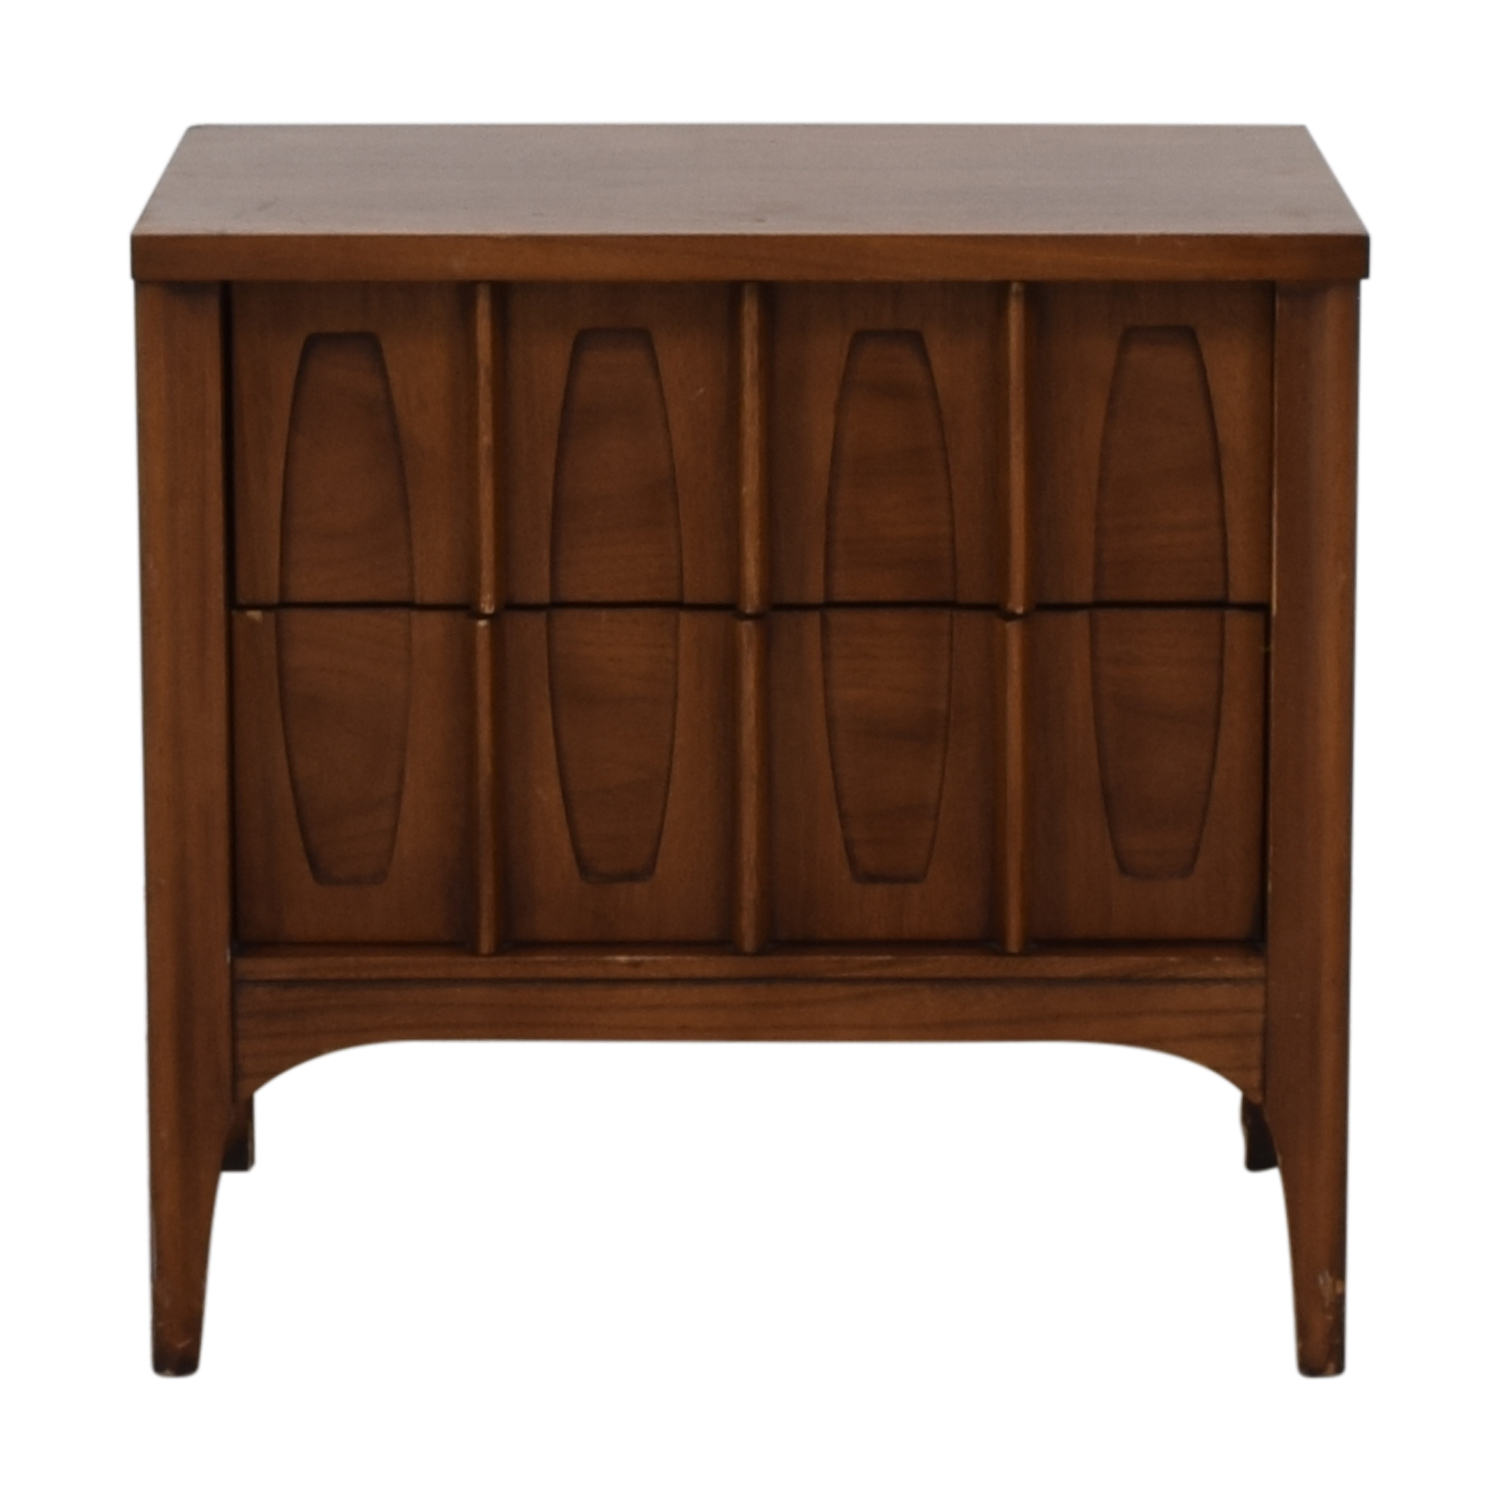 Kent Coffey Kent Coffey Mid Century Night Stand brown